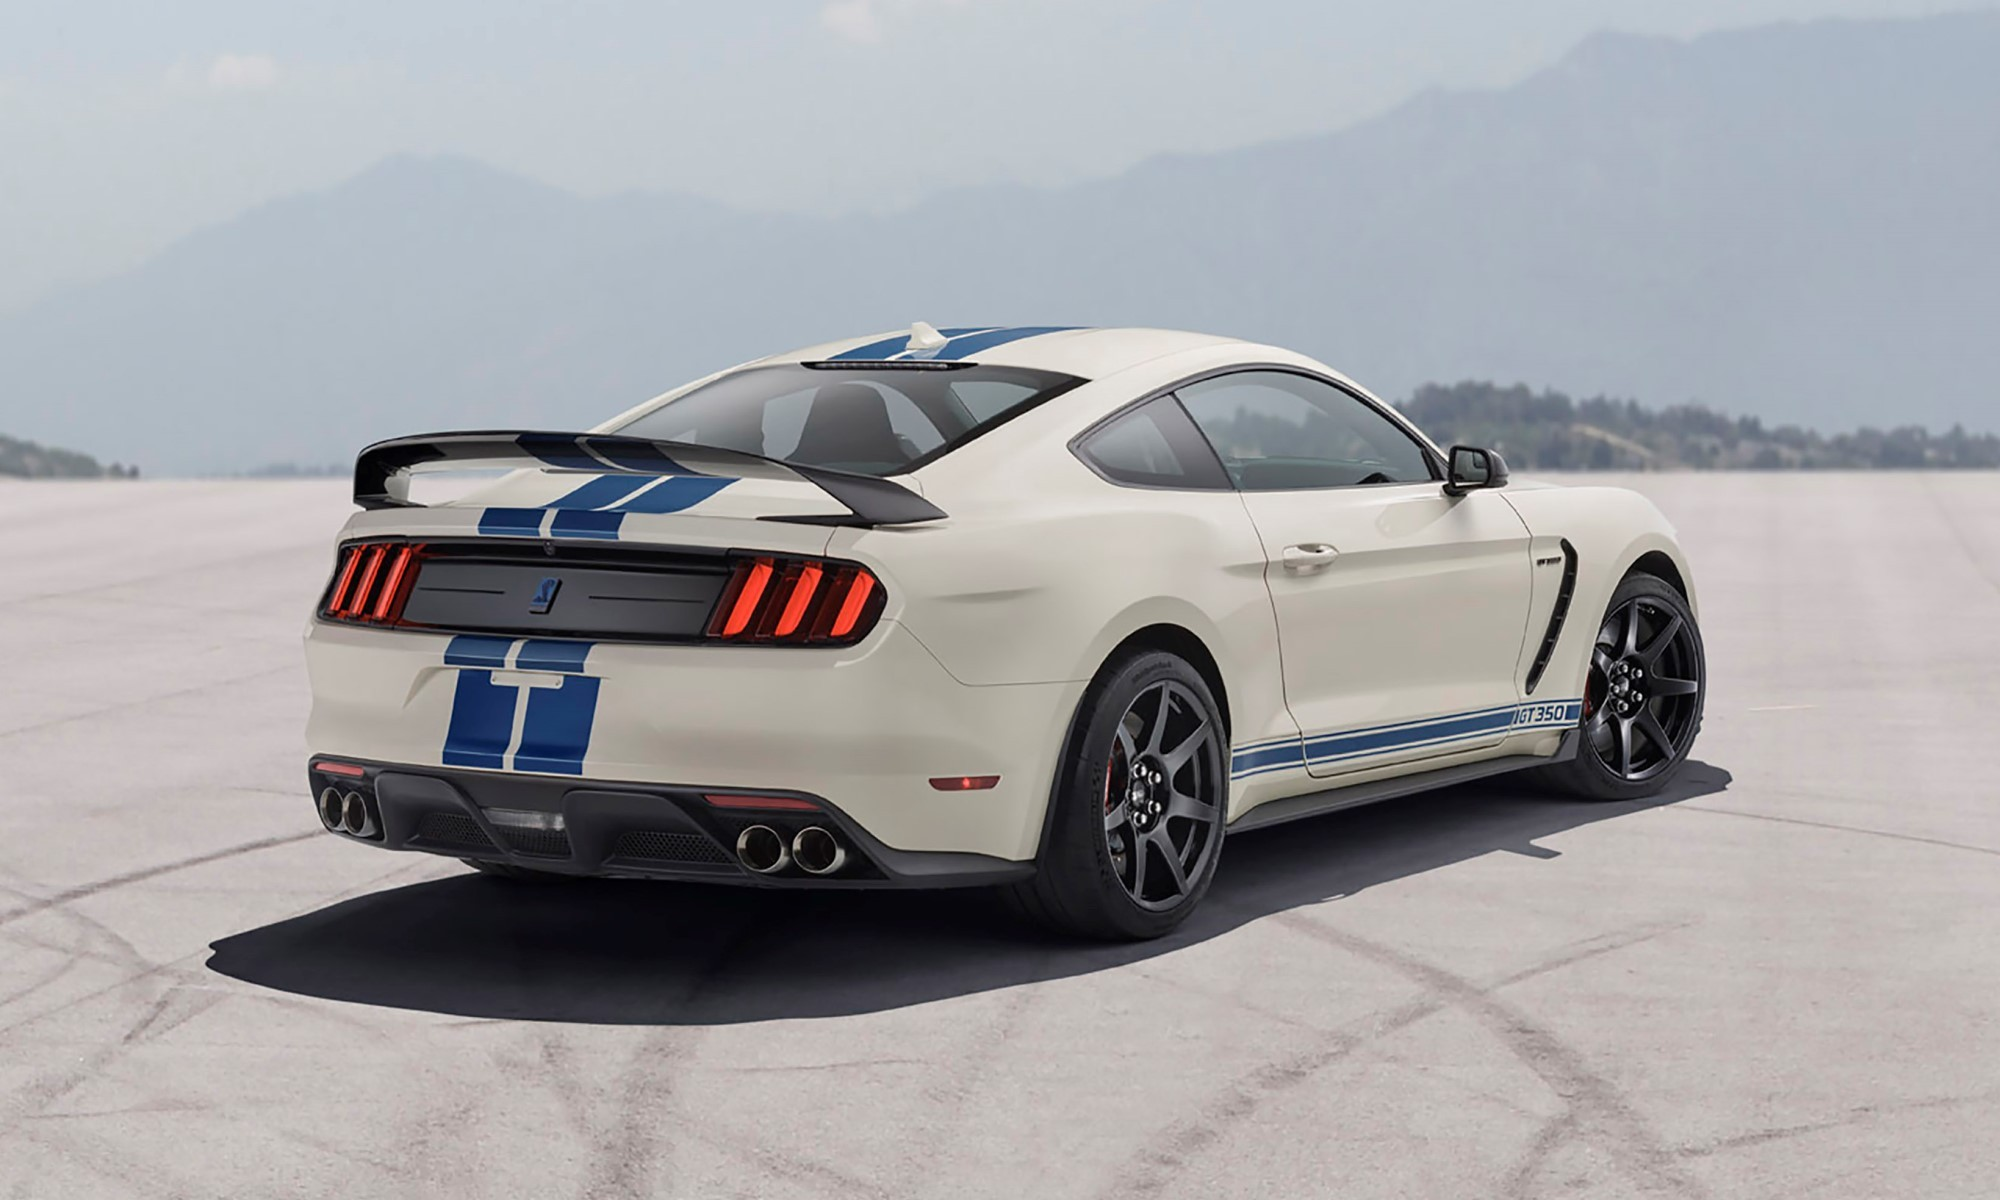 Mustang GT350 Heritage Edition rear